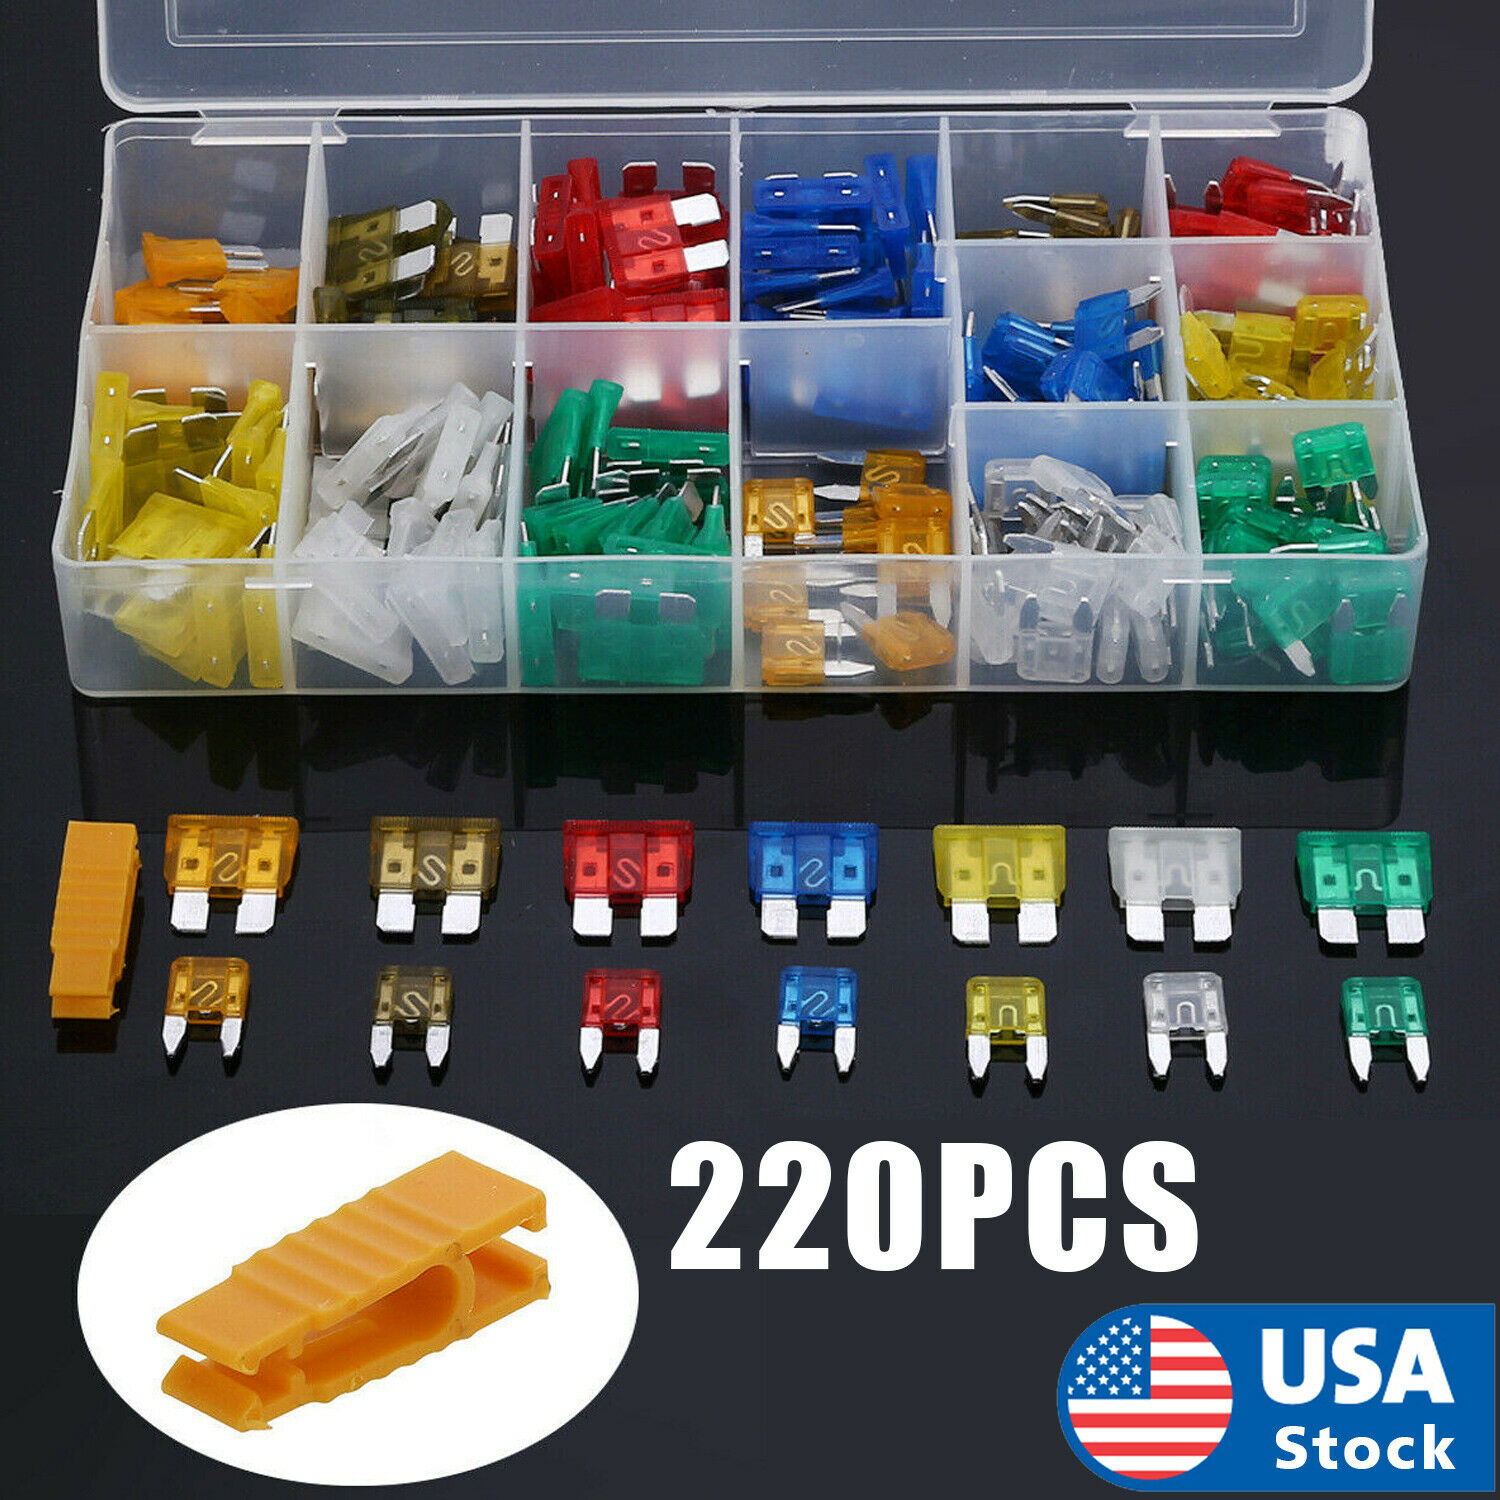 220pc Blade Fuse Assortment Auto Car Truck Motorcycle FUSES Kit ATC ATO ATM USA Car Audio & Video Installation